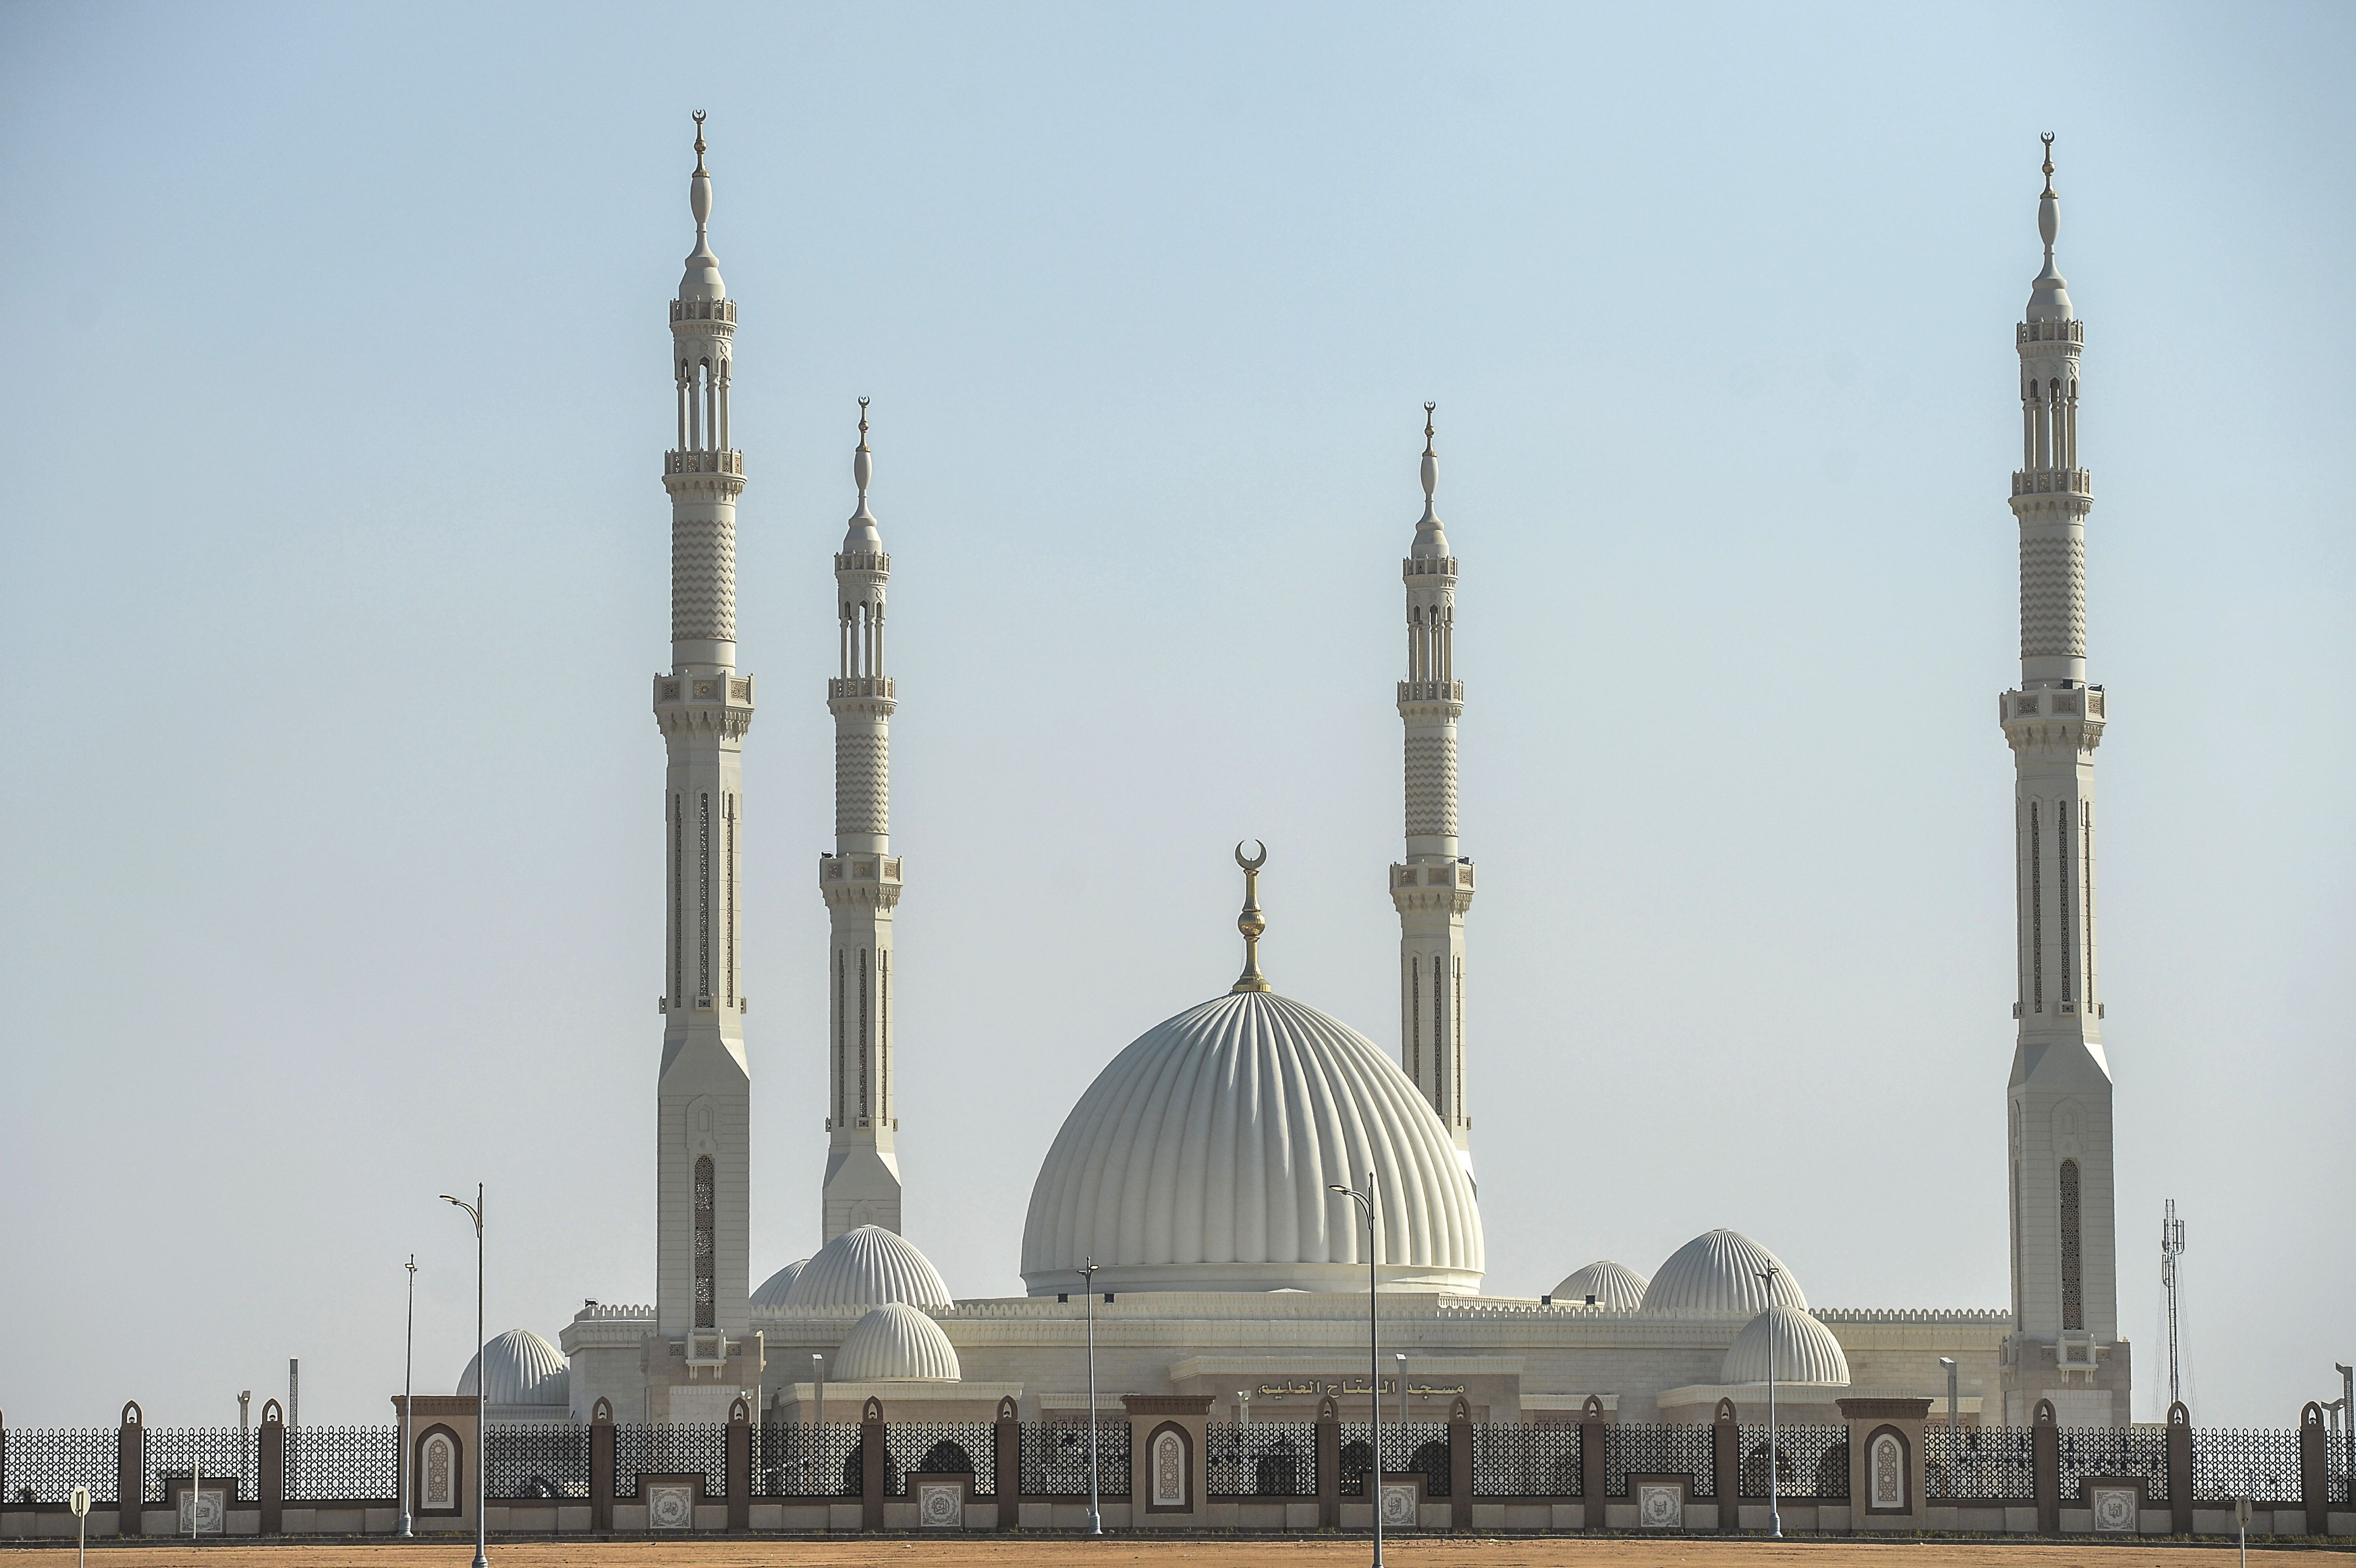 The al-Fattah al-Alim mosque in Egypt